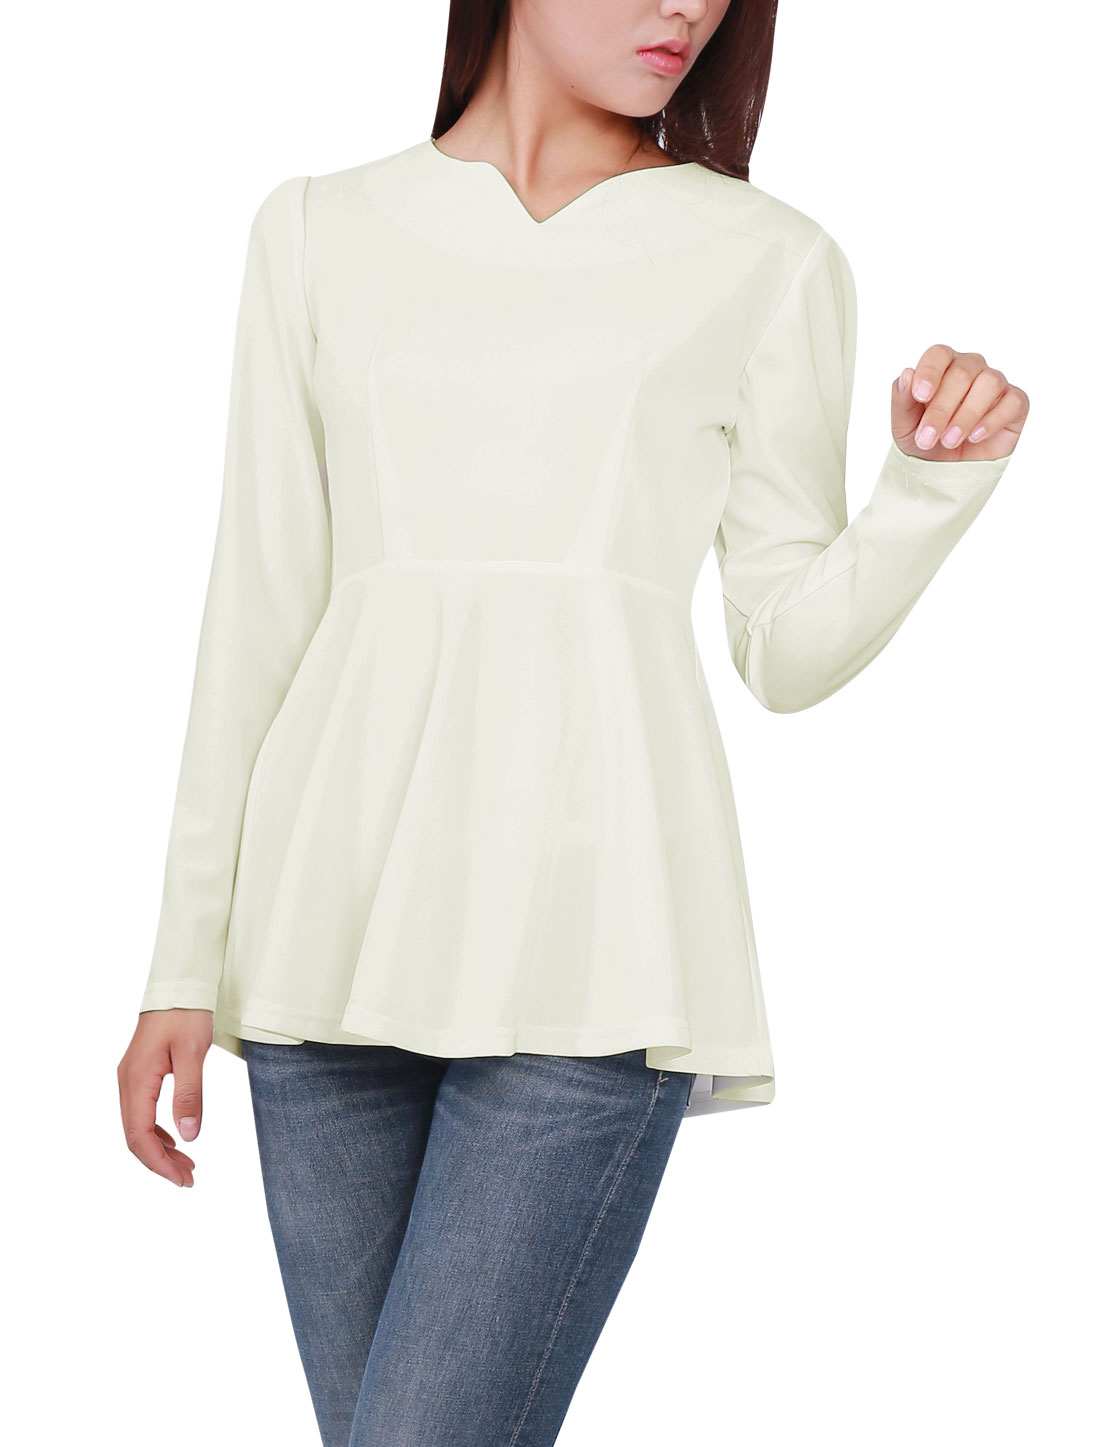 Ladies White Puff Sleeves Pure Slim Fitting Spring Tee Shirt XS